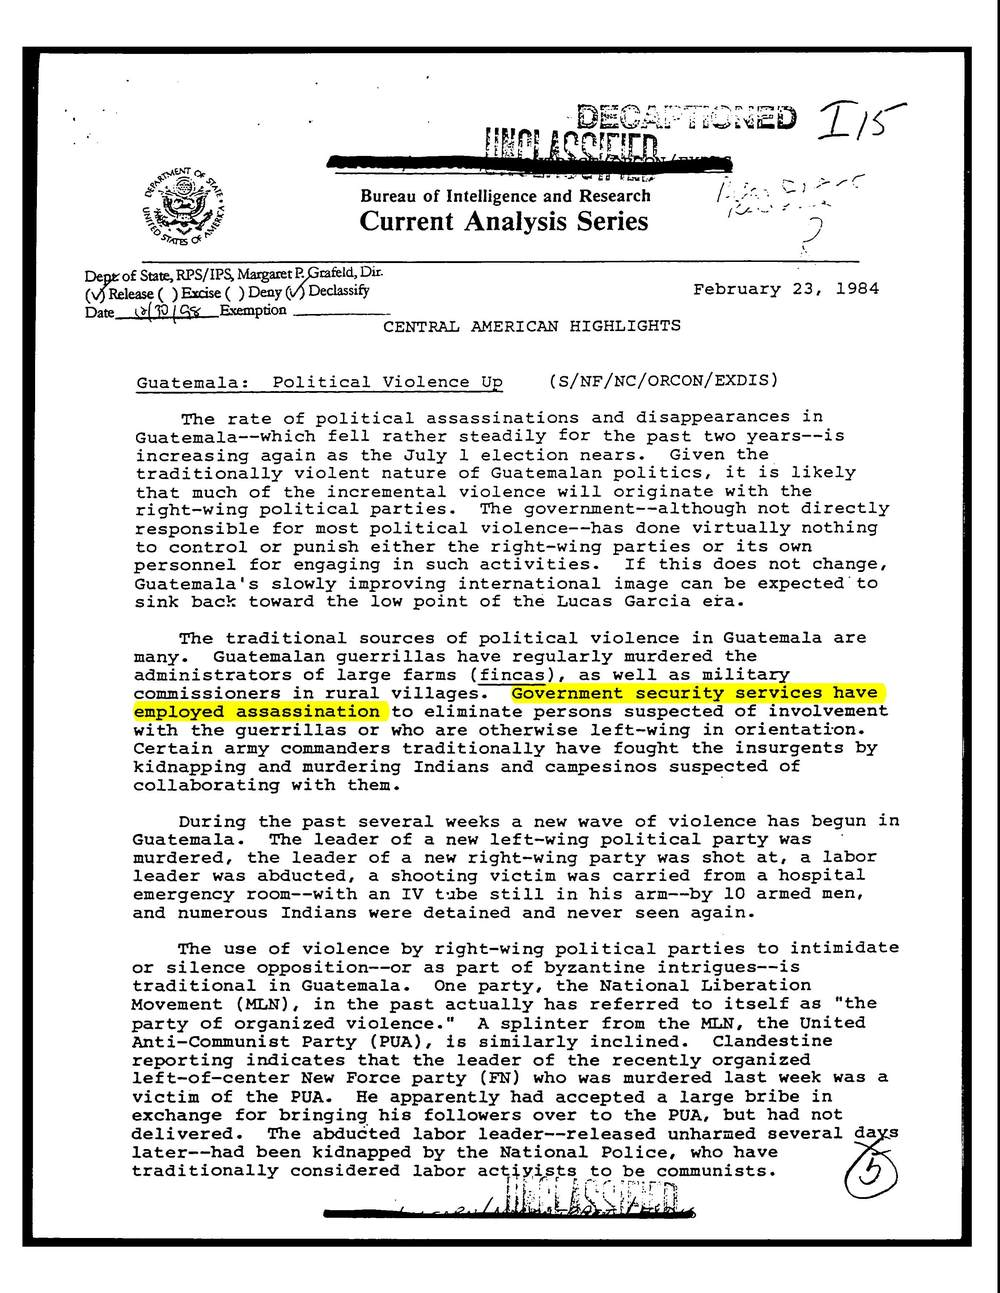 Documento desclasificado del Gobierno de los Estados Unidos obtenido a través de una solicitud usando el derecho 'Libertad de Información' por el Archivo de Seguridad Nacional en Washington DC. /  De-classified US Government document obtained through a Freedom of Information request by the National Security Archive in Washington DC.